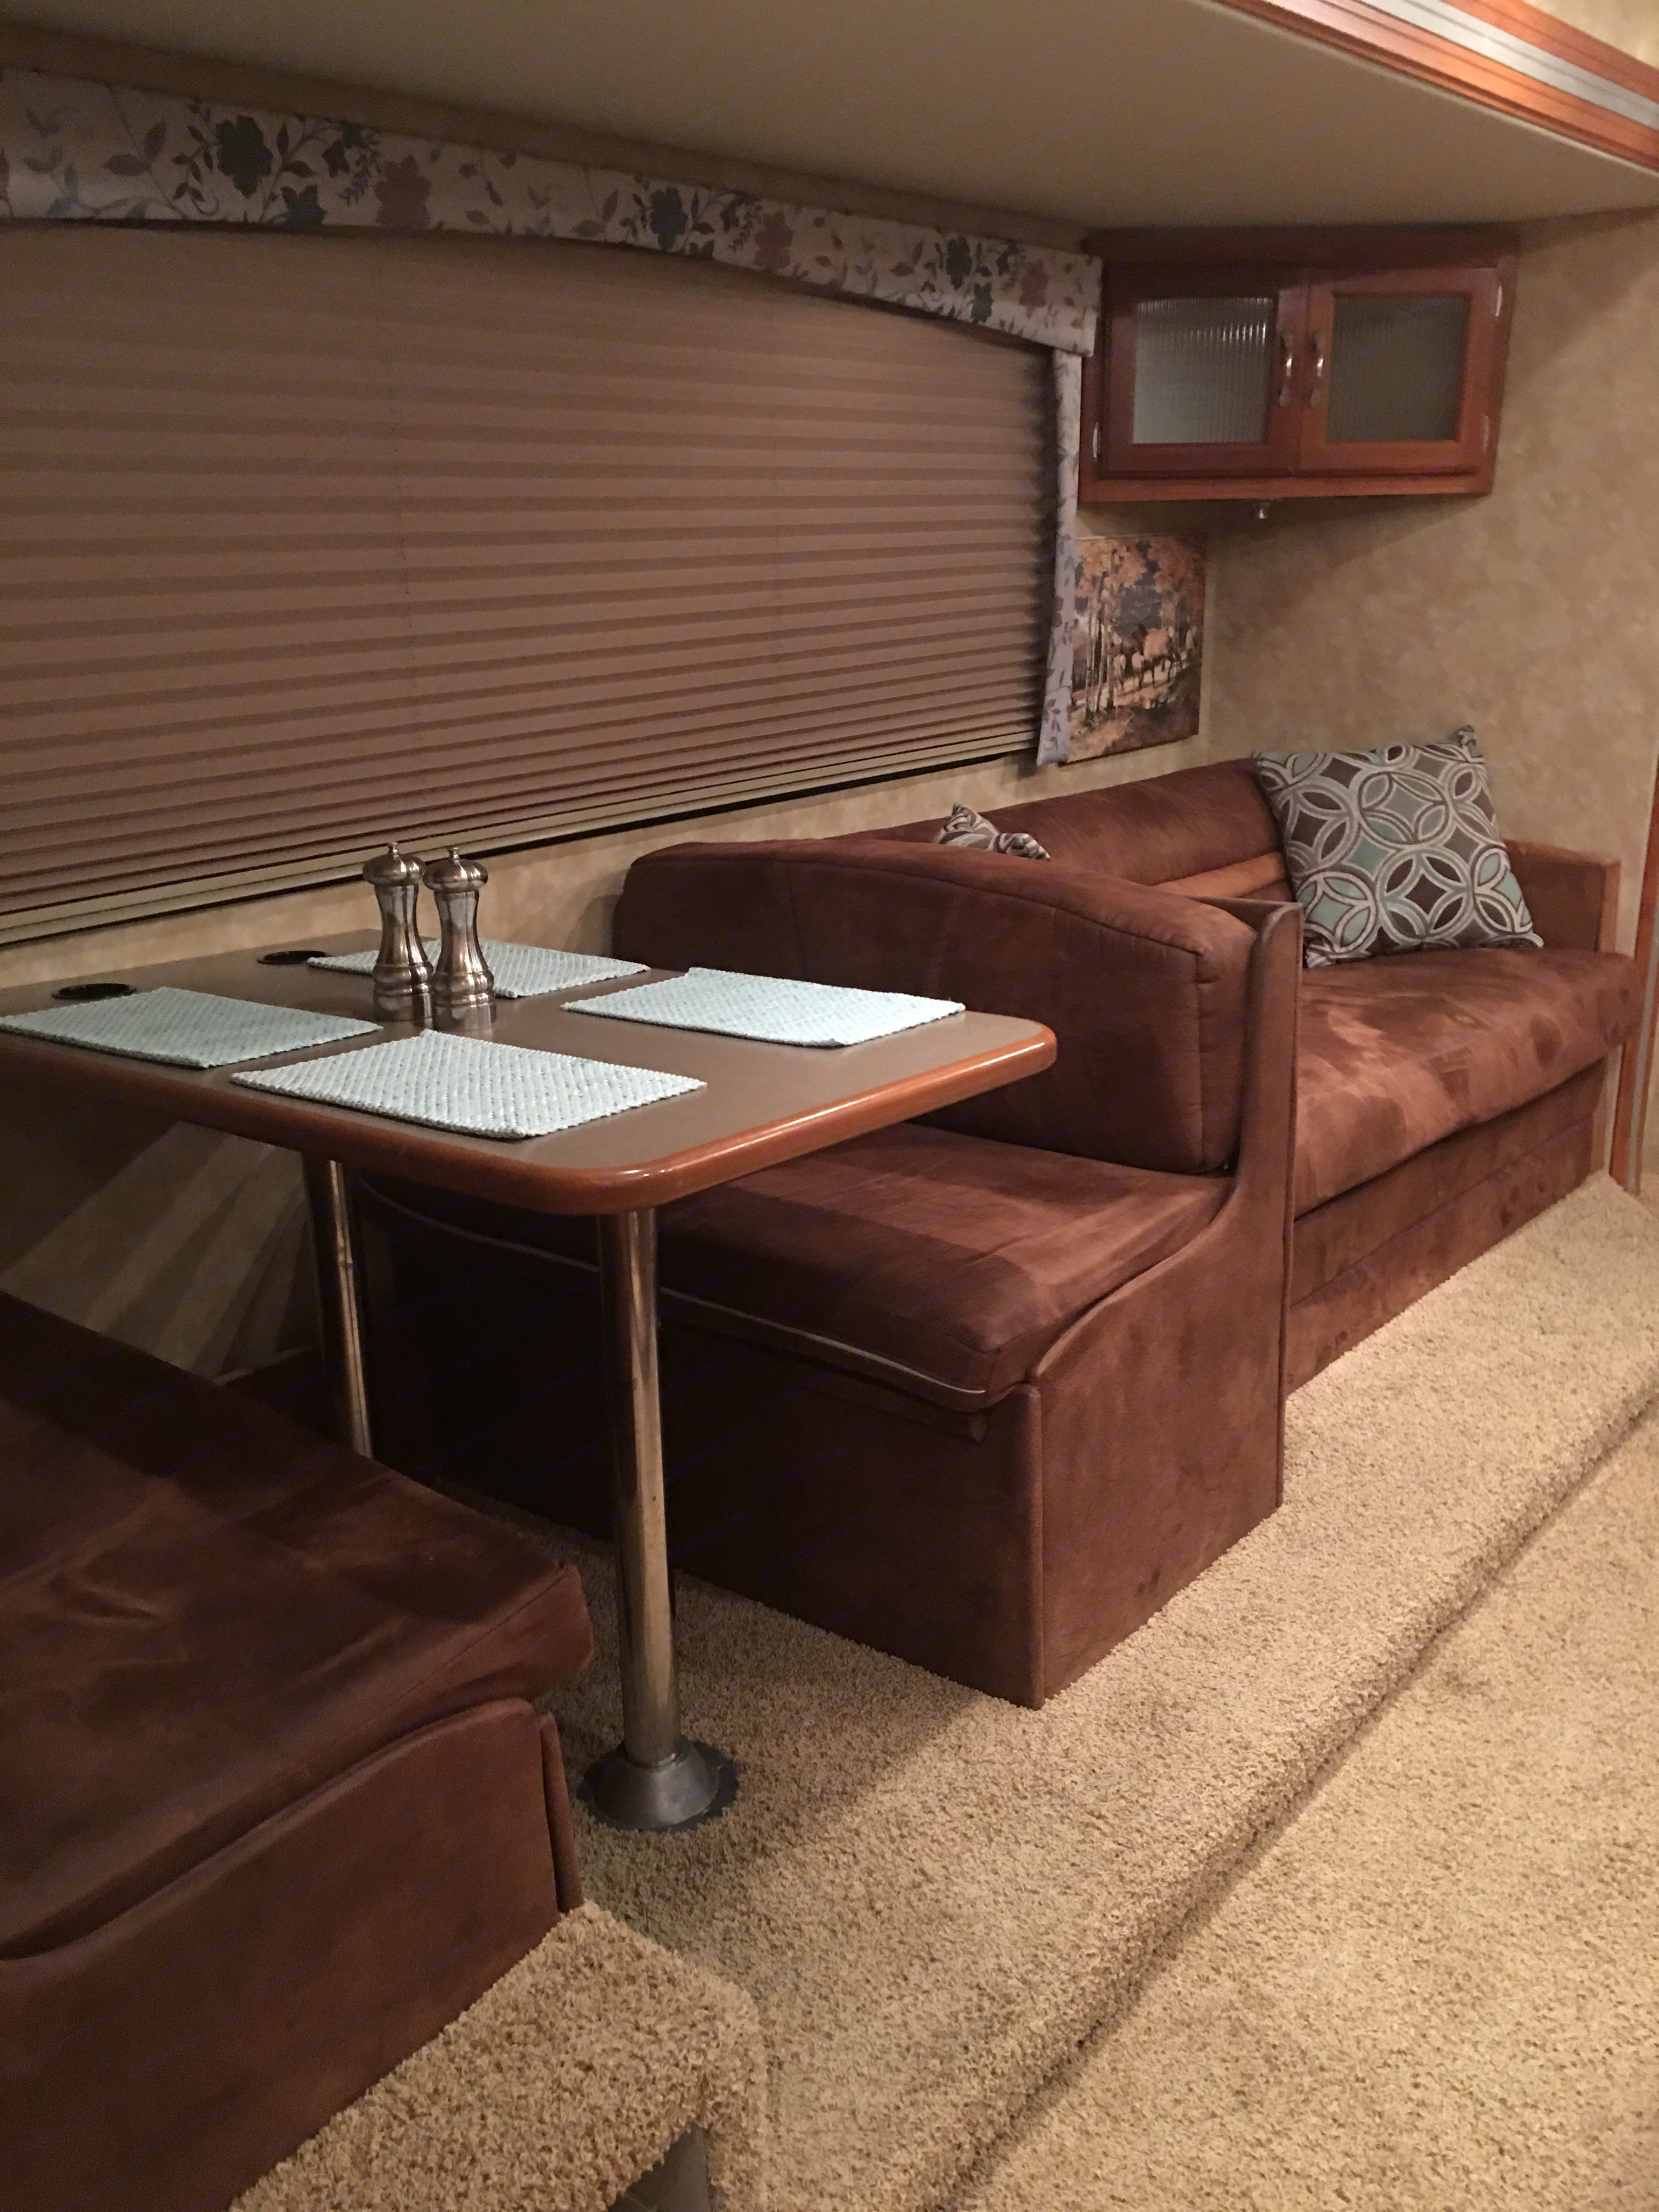 Dinette and couch. Coachmen Freelander 2008